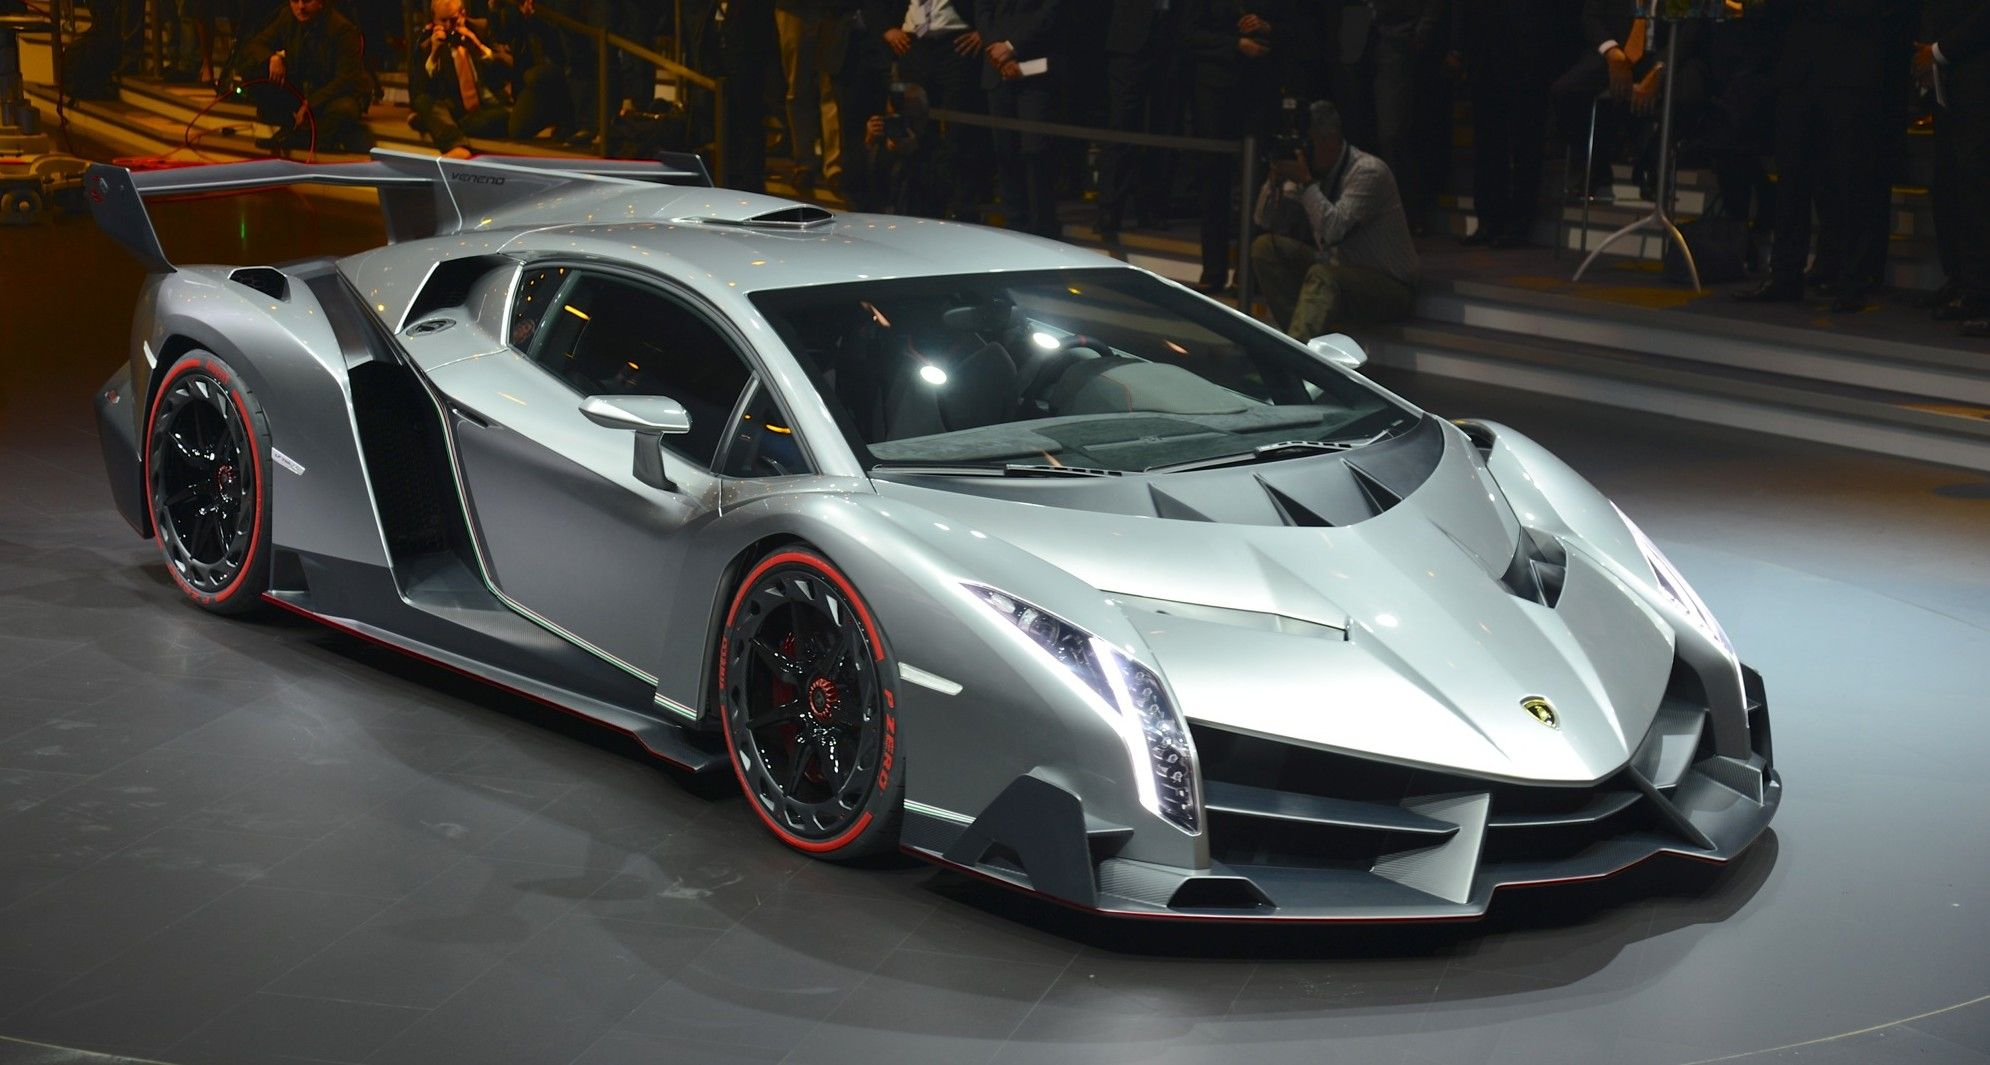 The Lamborghini Veneno is great!